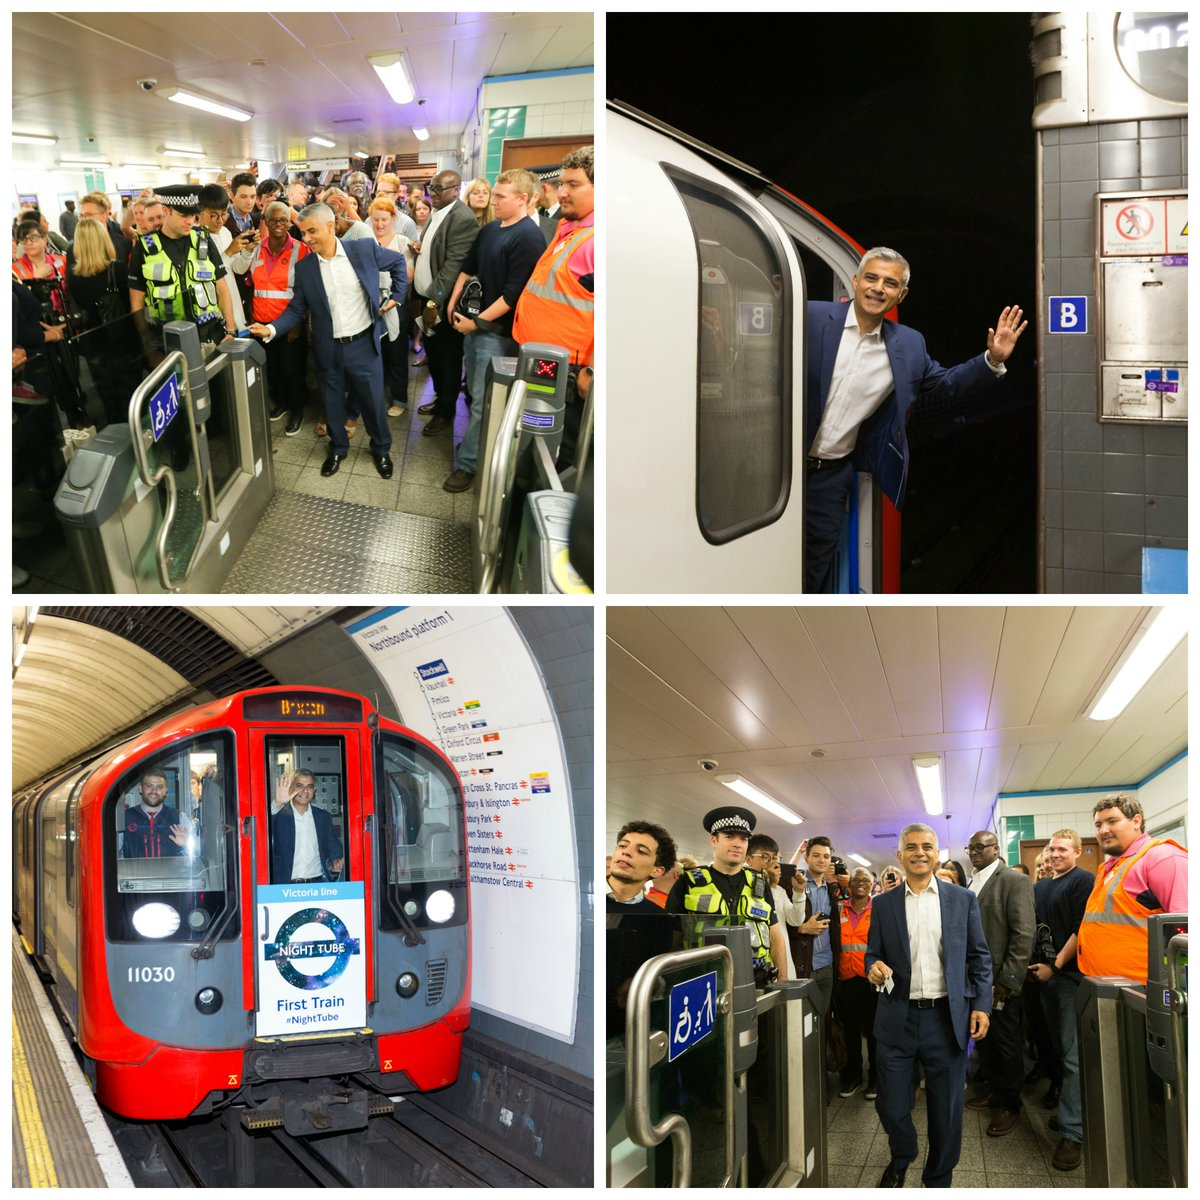 Cqyq6REWcAAbR3q - The Victoria Line's really big 50th birthday!